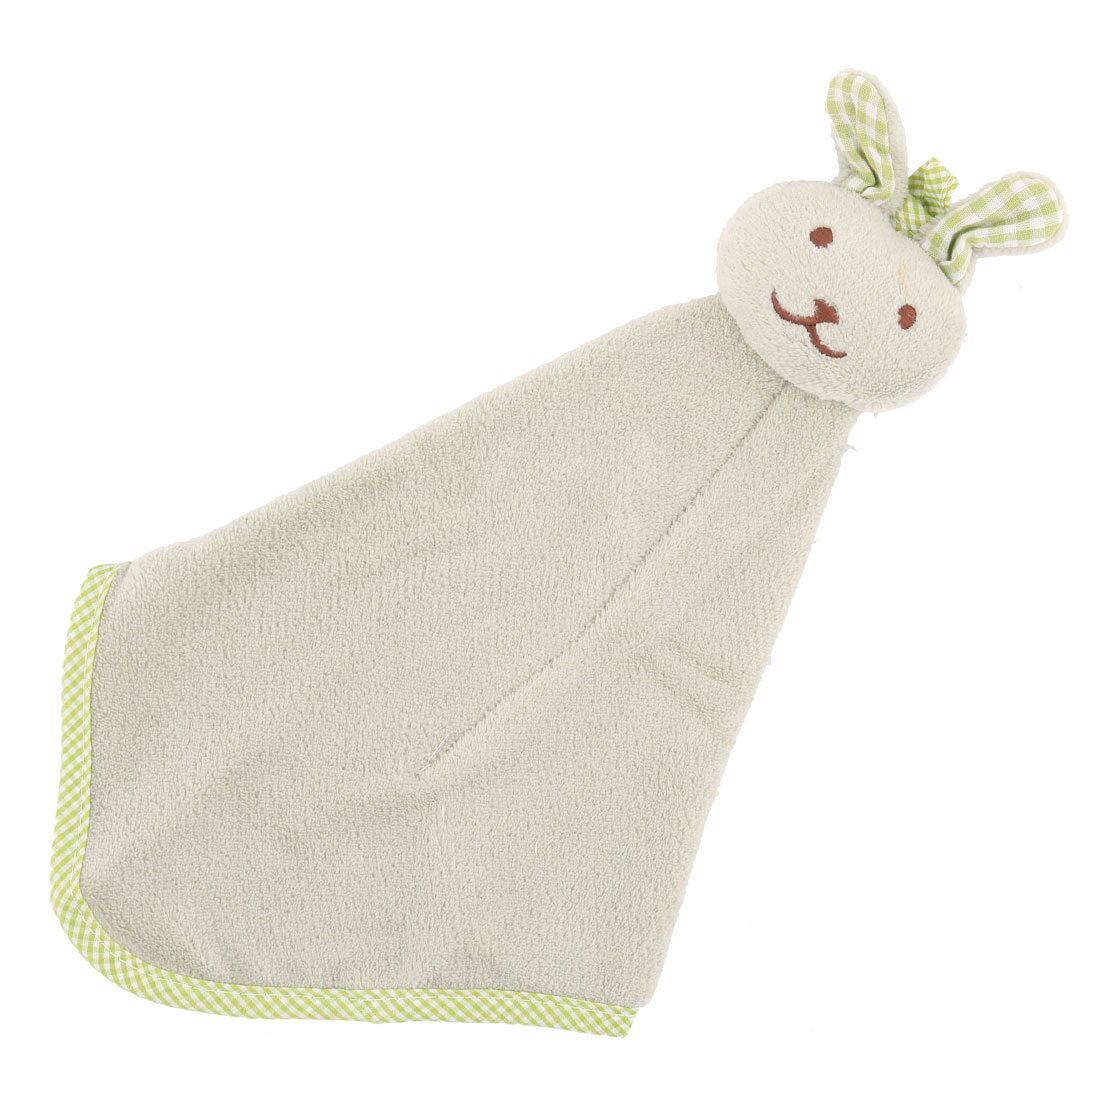 Household Kitchen Rabbit Design Terry Wall Hanging Cleaning Hand Drying Towel Light Green